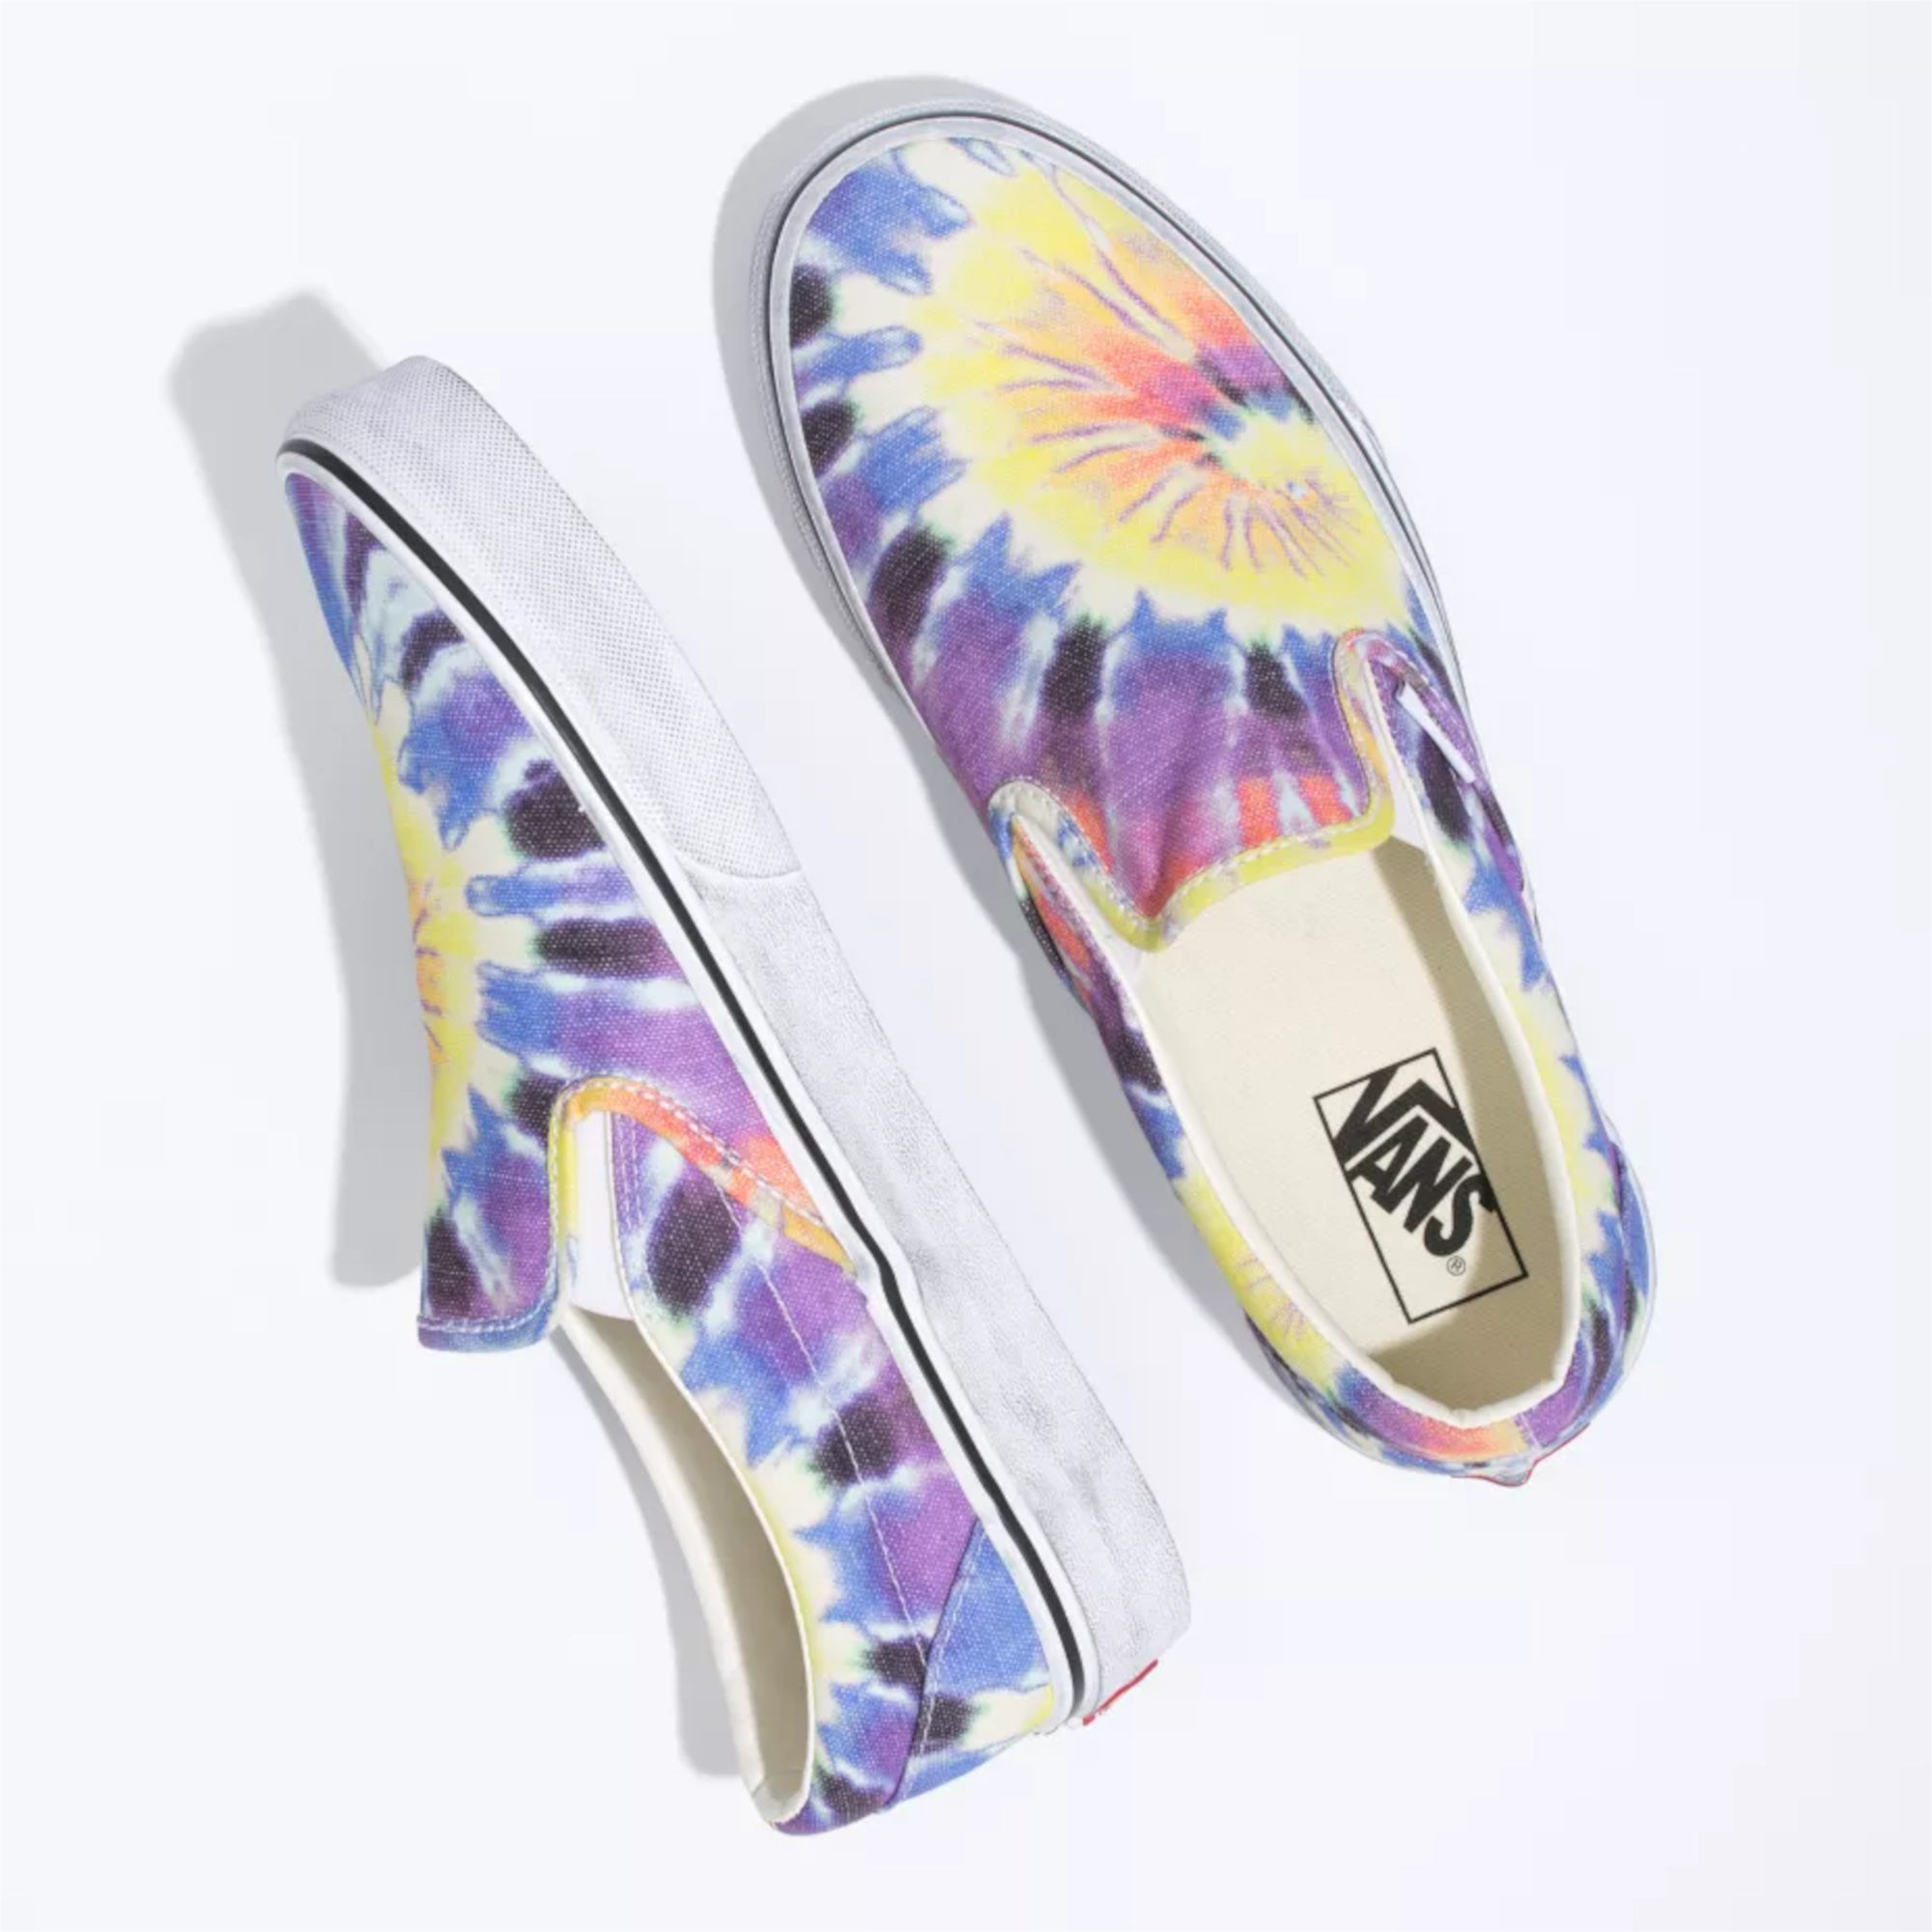 Vans Washed Classic Slip-On Shoes